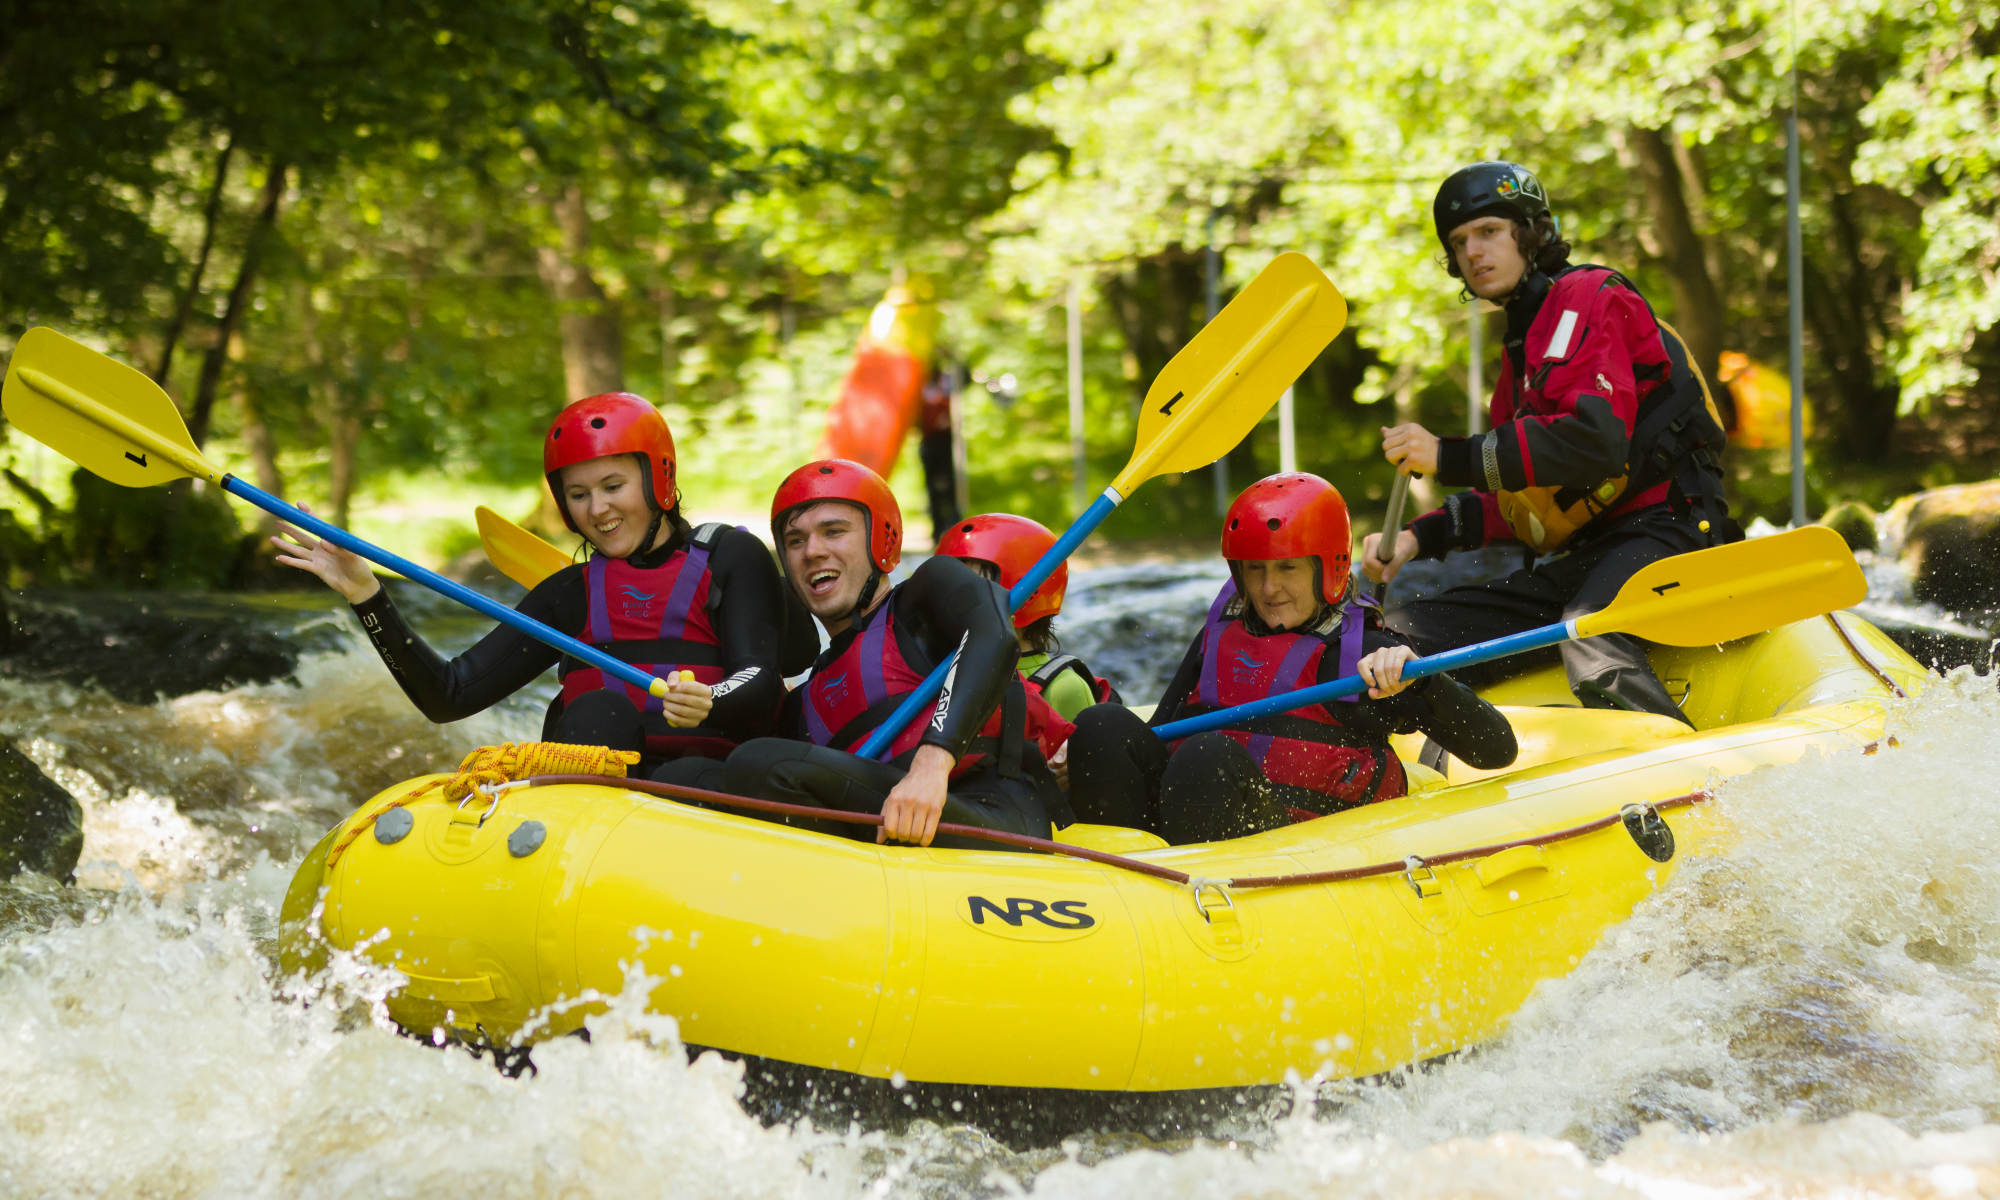 A group of people rafting on the River Tryweryn in North Wales.